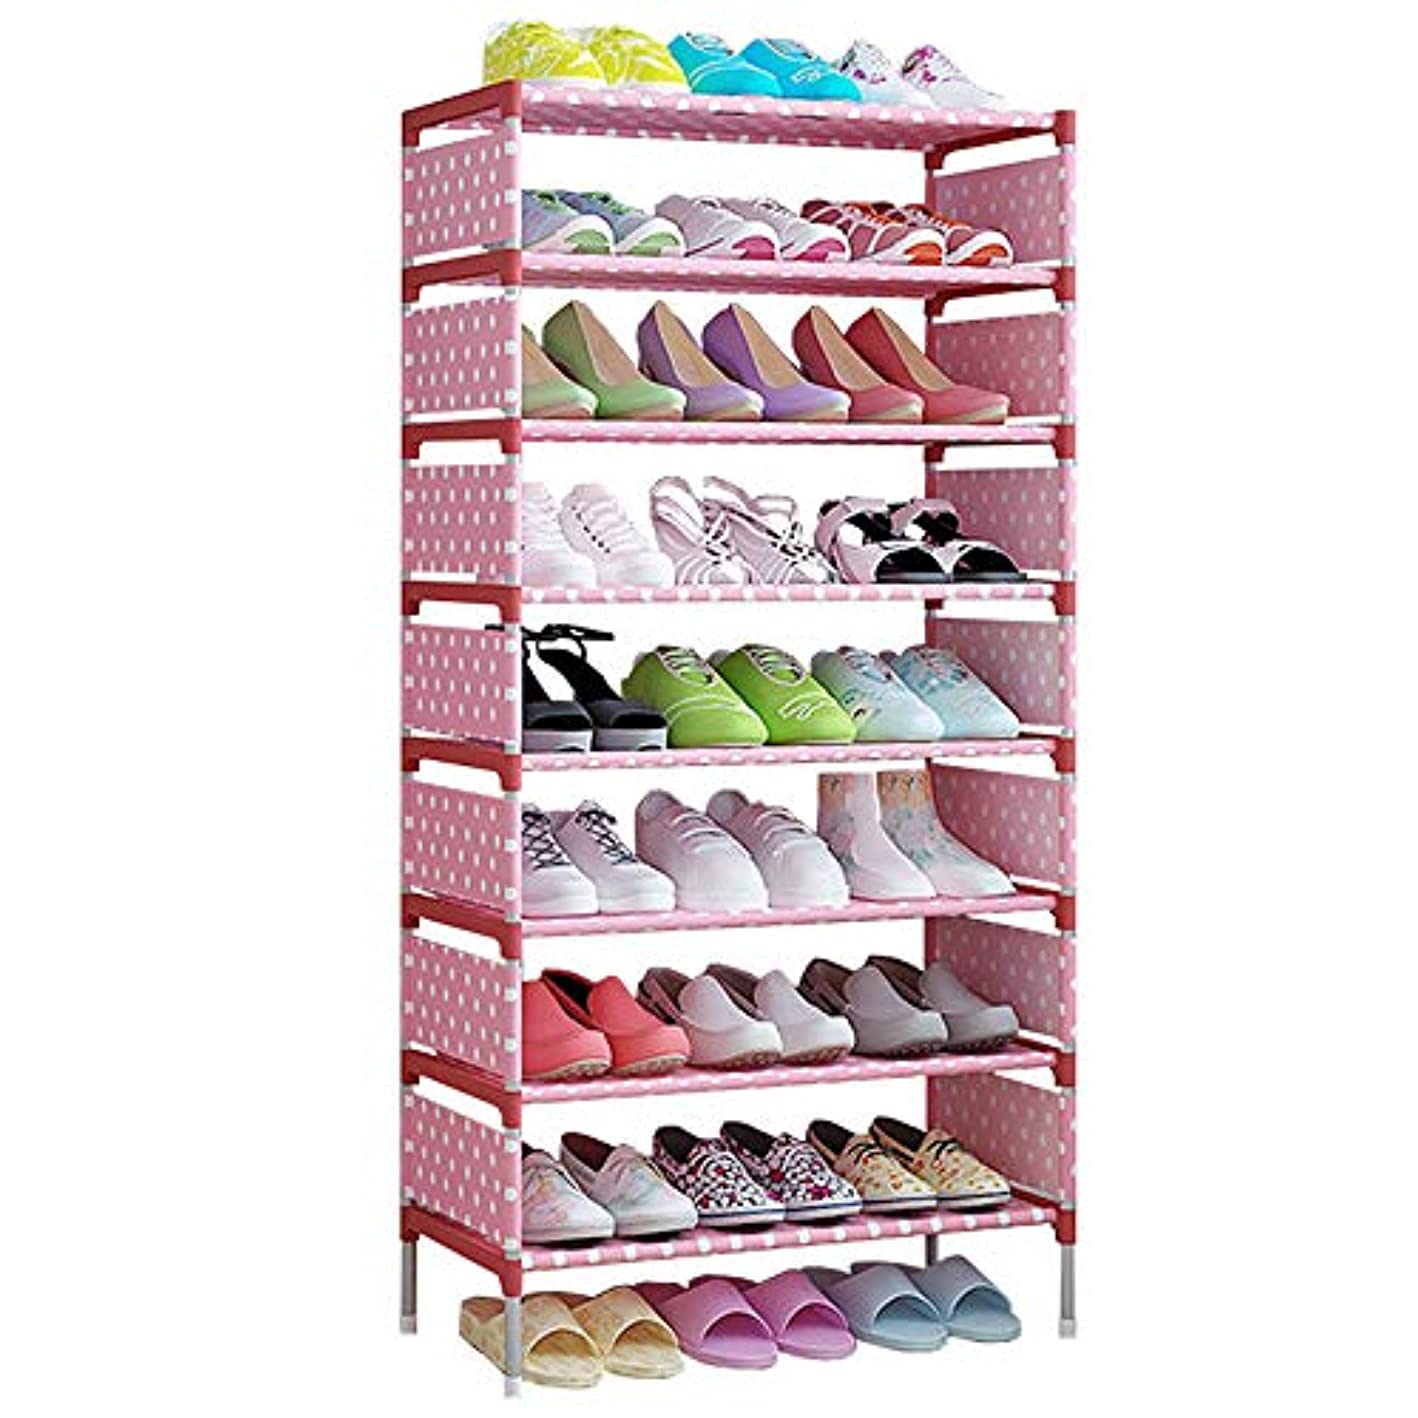 FKUO 9 Tier Shoe Rack Shelf Storage Organizer Shoes Shelf Easy Assembled Stand Holder Keep Room Neat Door Space Saving (A-Pink dots, 9-Tier) uptddl7428689